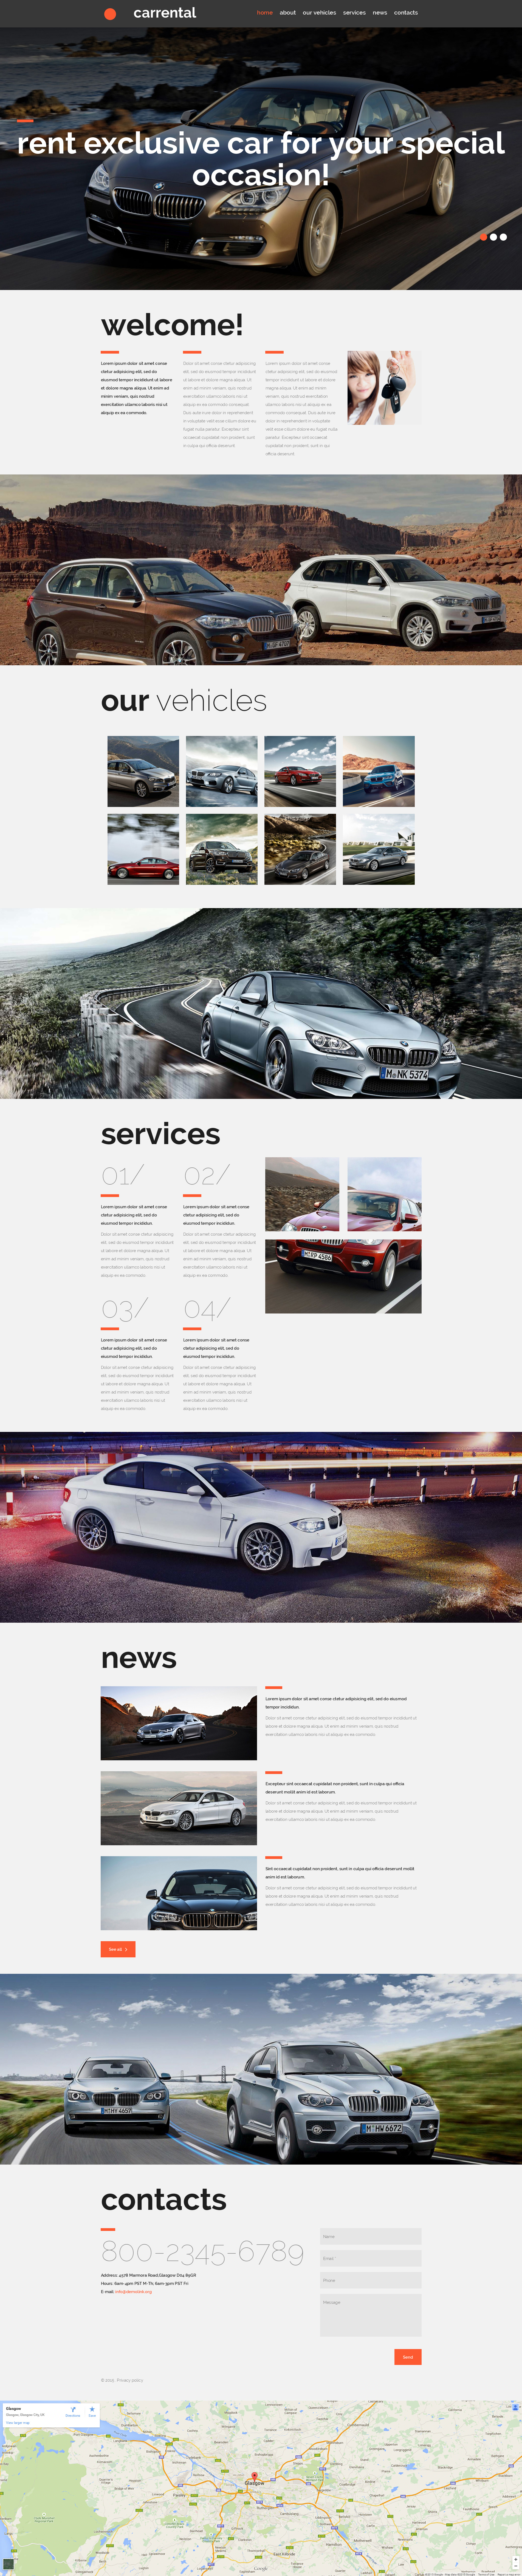 The Car Rental Moto CMS 3 Templates Design 53723, one of the best Moto CMS 3 templates of its kind (cars, most popular), also known as car rental Moto CMS 3 template, auto dealer Moto CMS 3 template, improvement Moto CMS 3 template, new Moto CMS 3 template, used Moto CMS 3 template, certified Moto CMS 3 template, exhibition solution Moto CMS 3 template, market Moto CMS 3 template, research Moto CMS 3 template, vendor Moto CMS 3 template, motor Moto CMS 3 template, price Moto CMS 3 template, Lexus transport Moto CMS 3 template, speed Moto CMS 3 template, jeep Moto CMS 3 template, ford Moto CMS 3 template, Audi Volvo Mercedes driving Moto CMS 3 template, off-road Moto CMS 3 template, racing Moto CMS 3 template, driver Moto CMS 3 template, track Moto CMS 3 template, race Moto CMS 3 template, urban Moto CMS 3 template, freeway Moto CMS 3 template, highway Moto CMS 3 template, road Moto CMS 3 template, vehicle Moto CMS 3 template, Porsche BMW spar and related with car rental, auto dealer, improvement, new, used, certified, exhibition solution, market, research, vendor, motor, price, Lexus transport, speed, jeep, ford, Audi Volvo Mercedes driving, off-road, racing, driver, track, race, urban, freeway, highway, road, vehicle, Porsche BMW spar, etc.